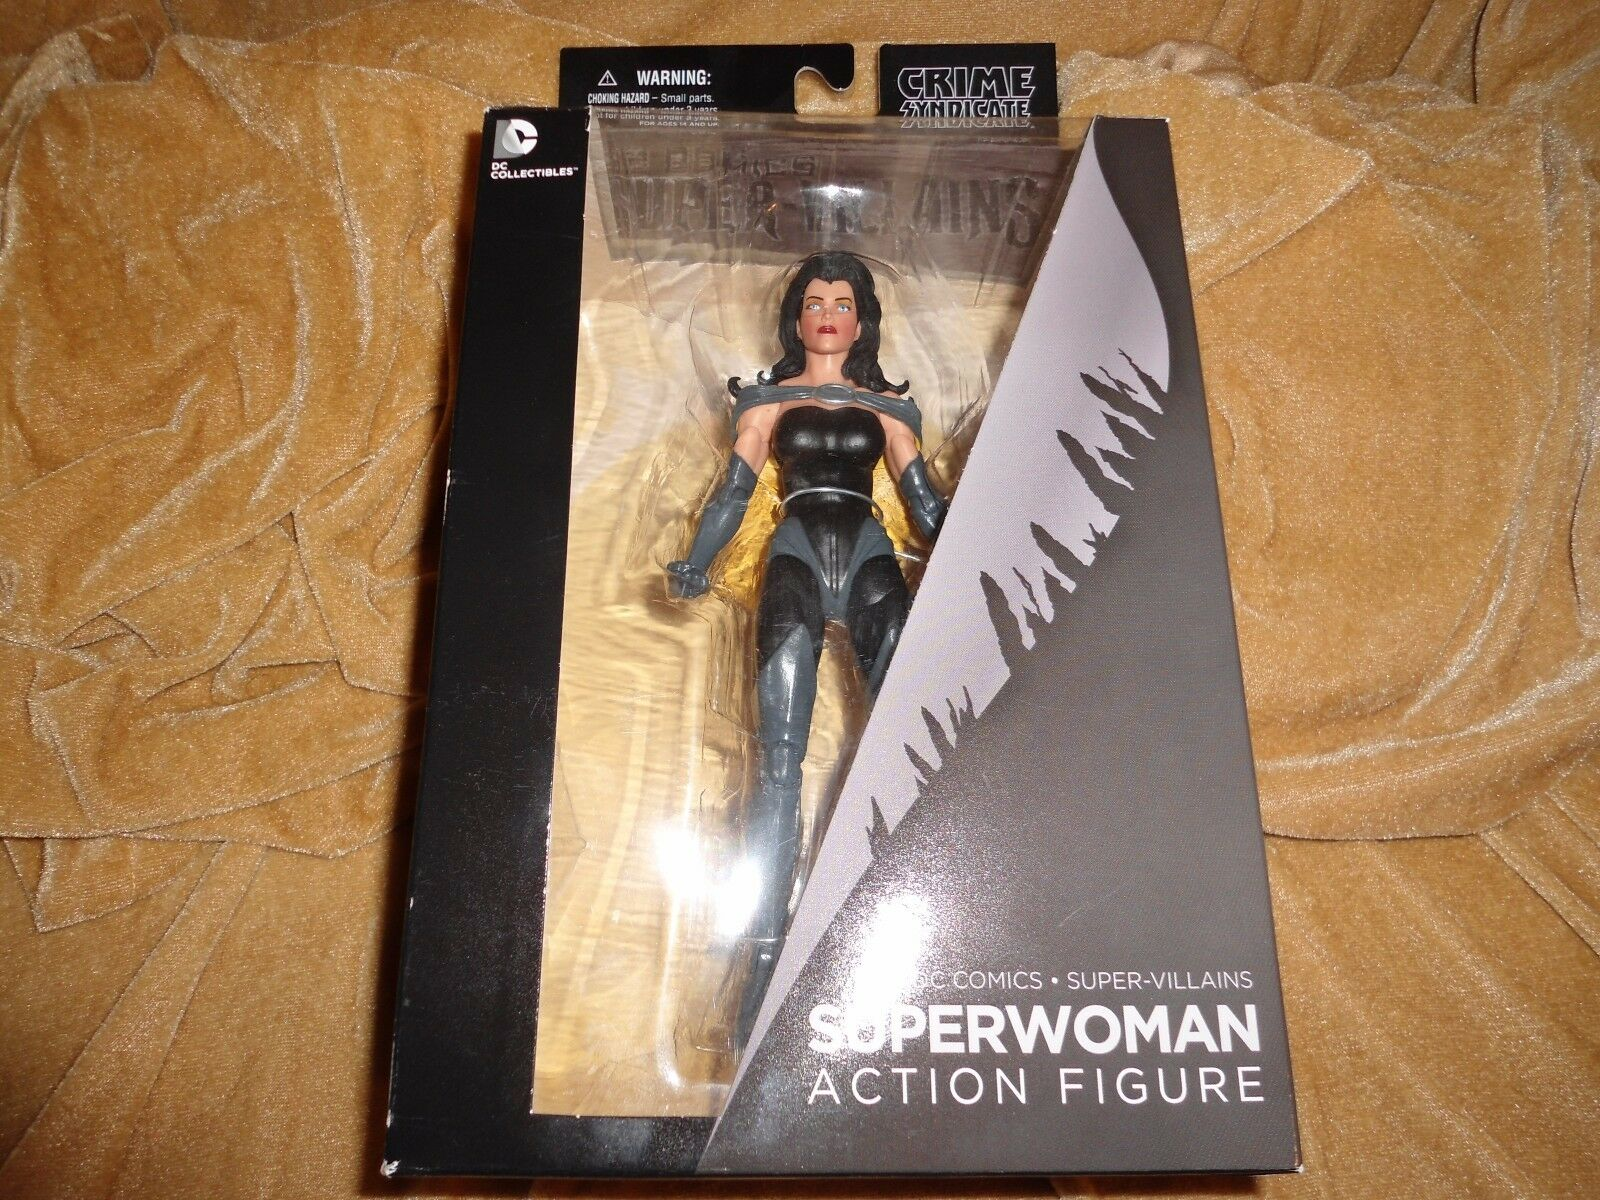 Dc comics and syndikat superschurken  superwoman action - figur